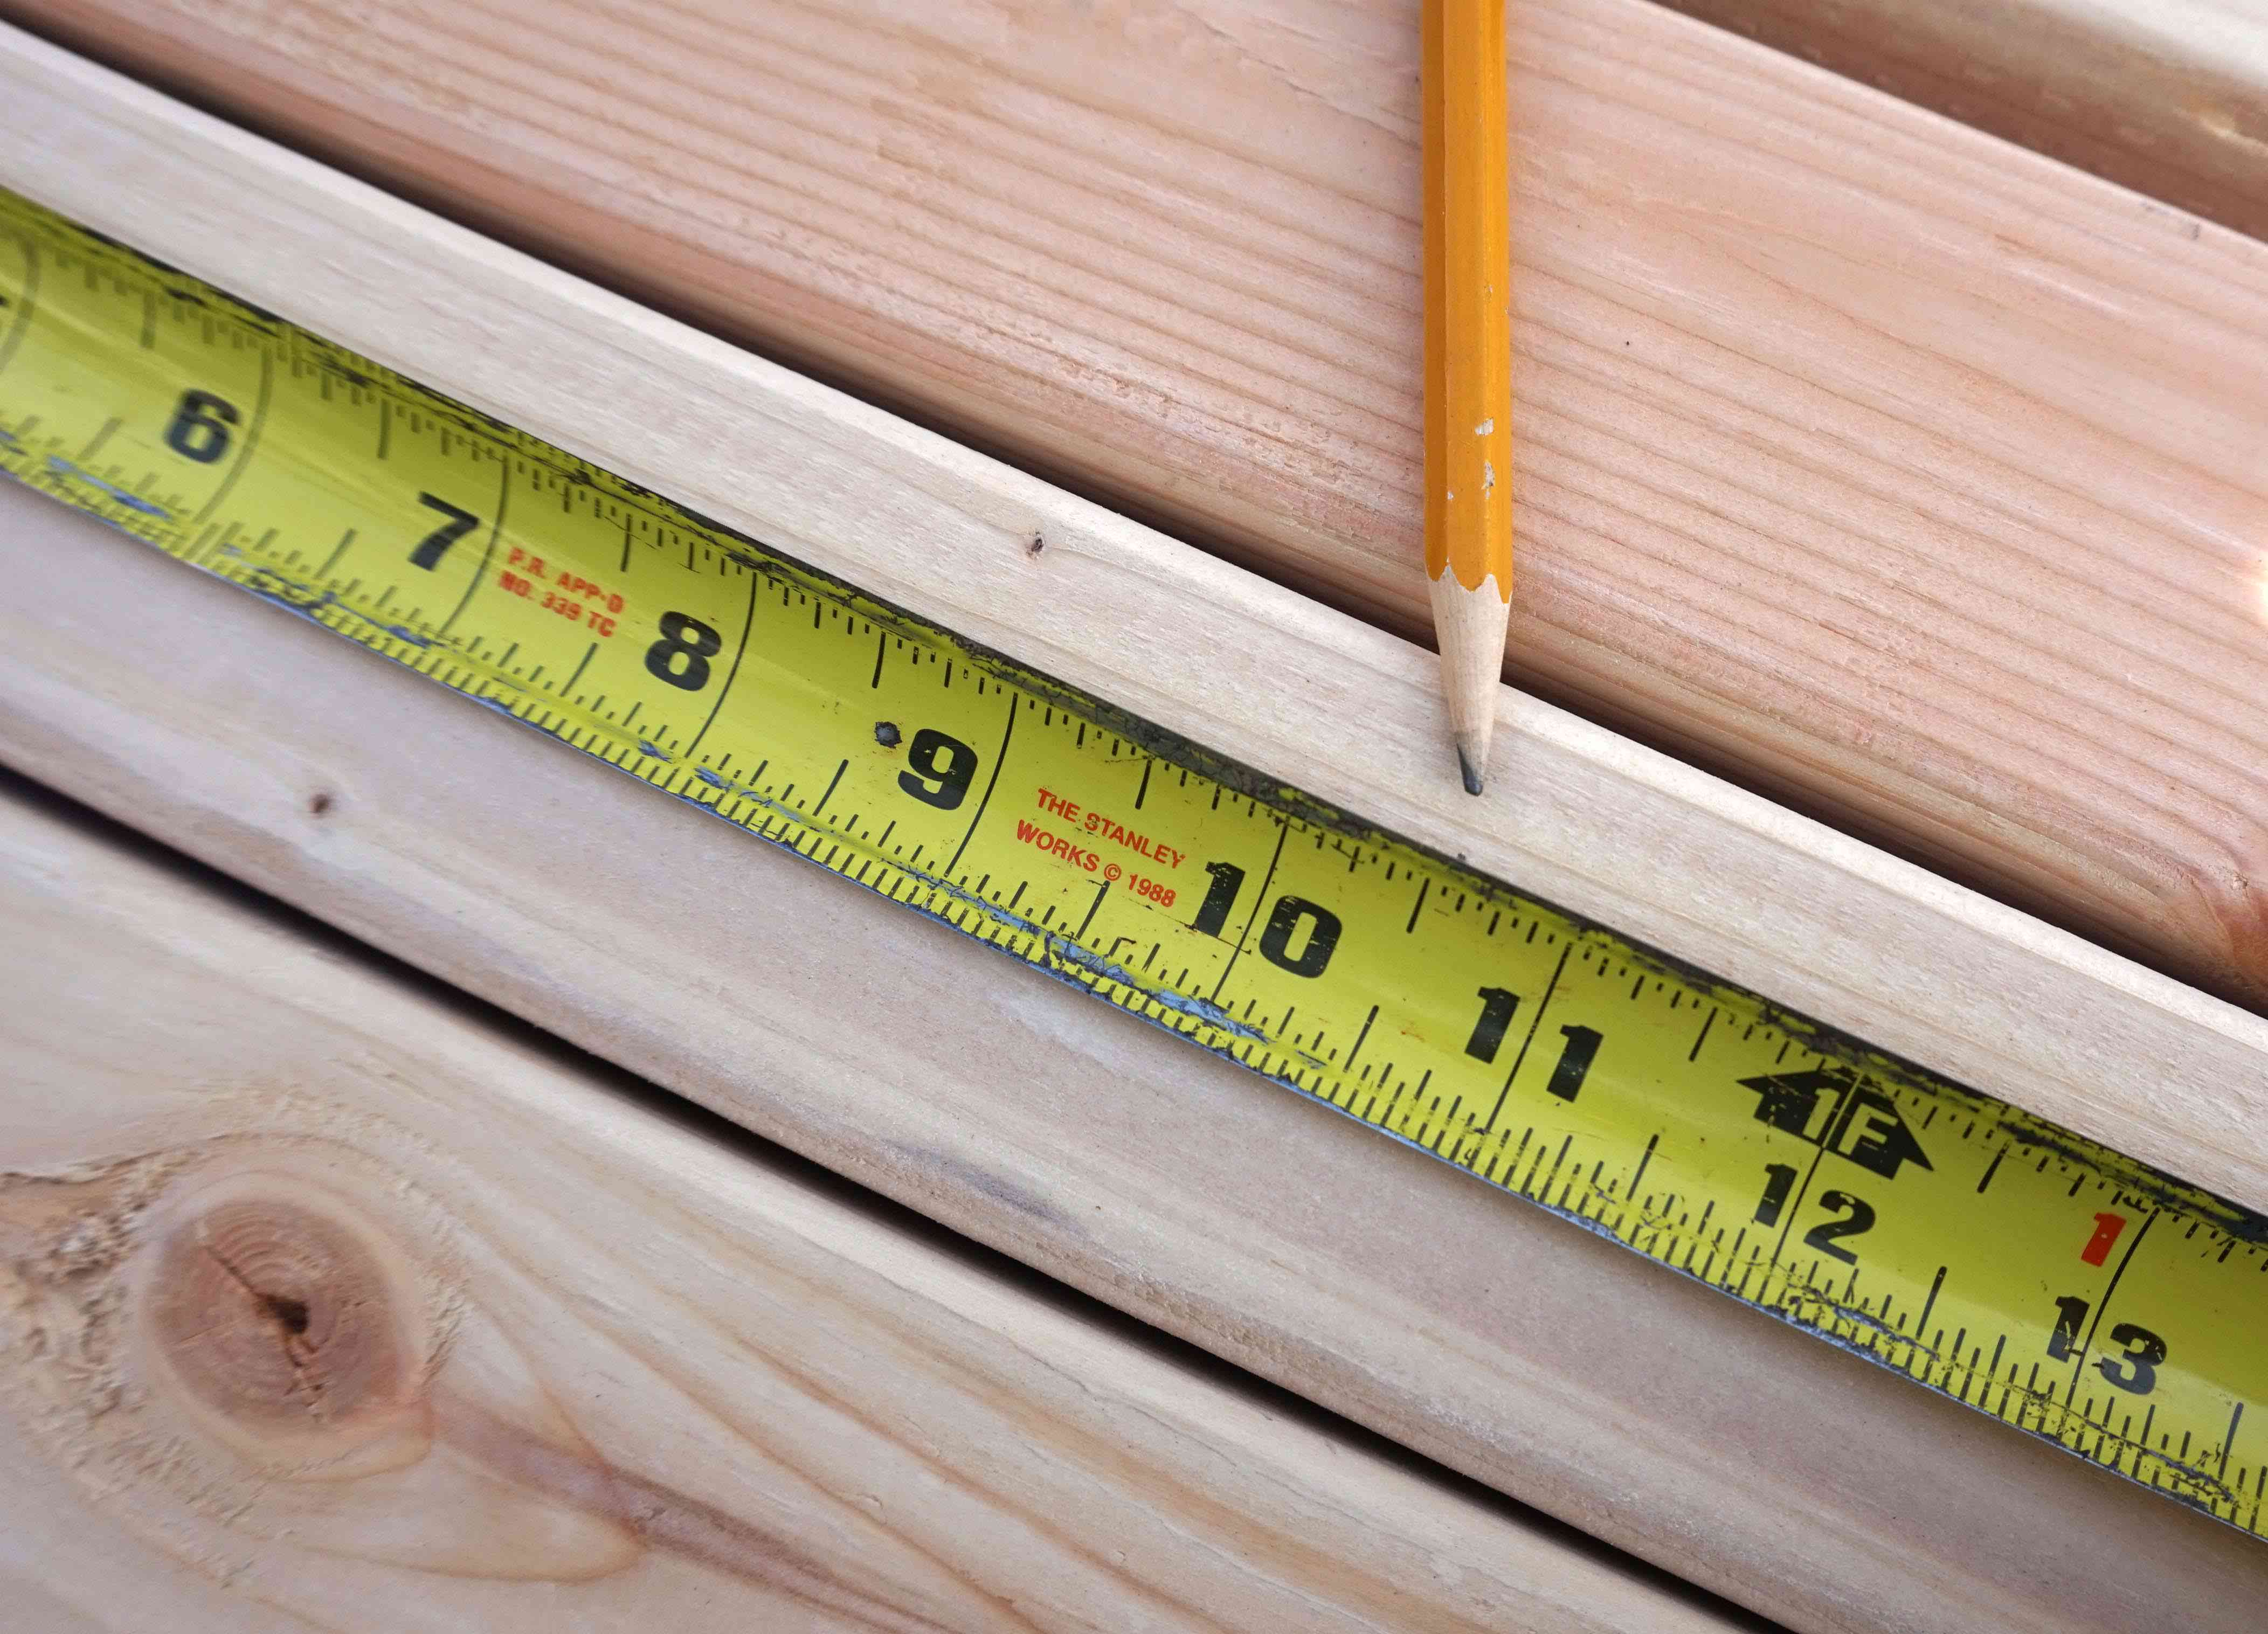 A pencil and measuring tape marking a wooden board